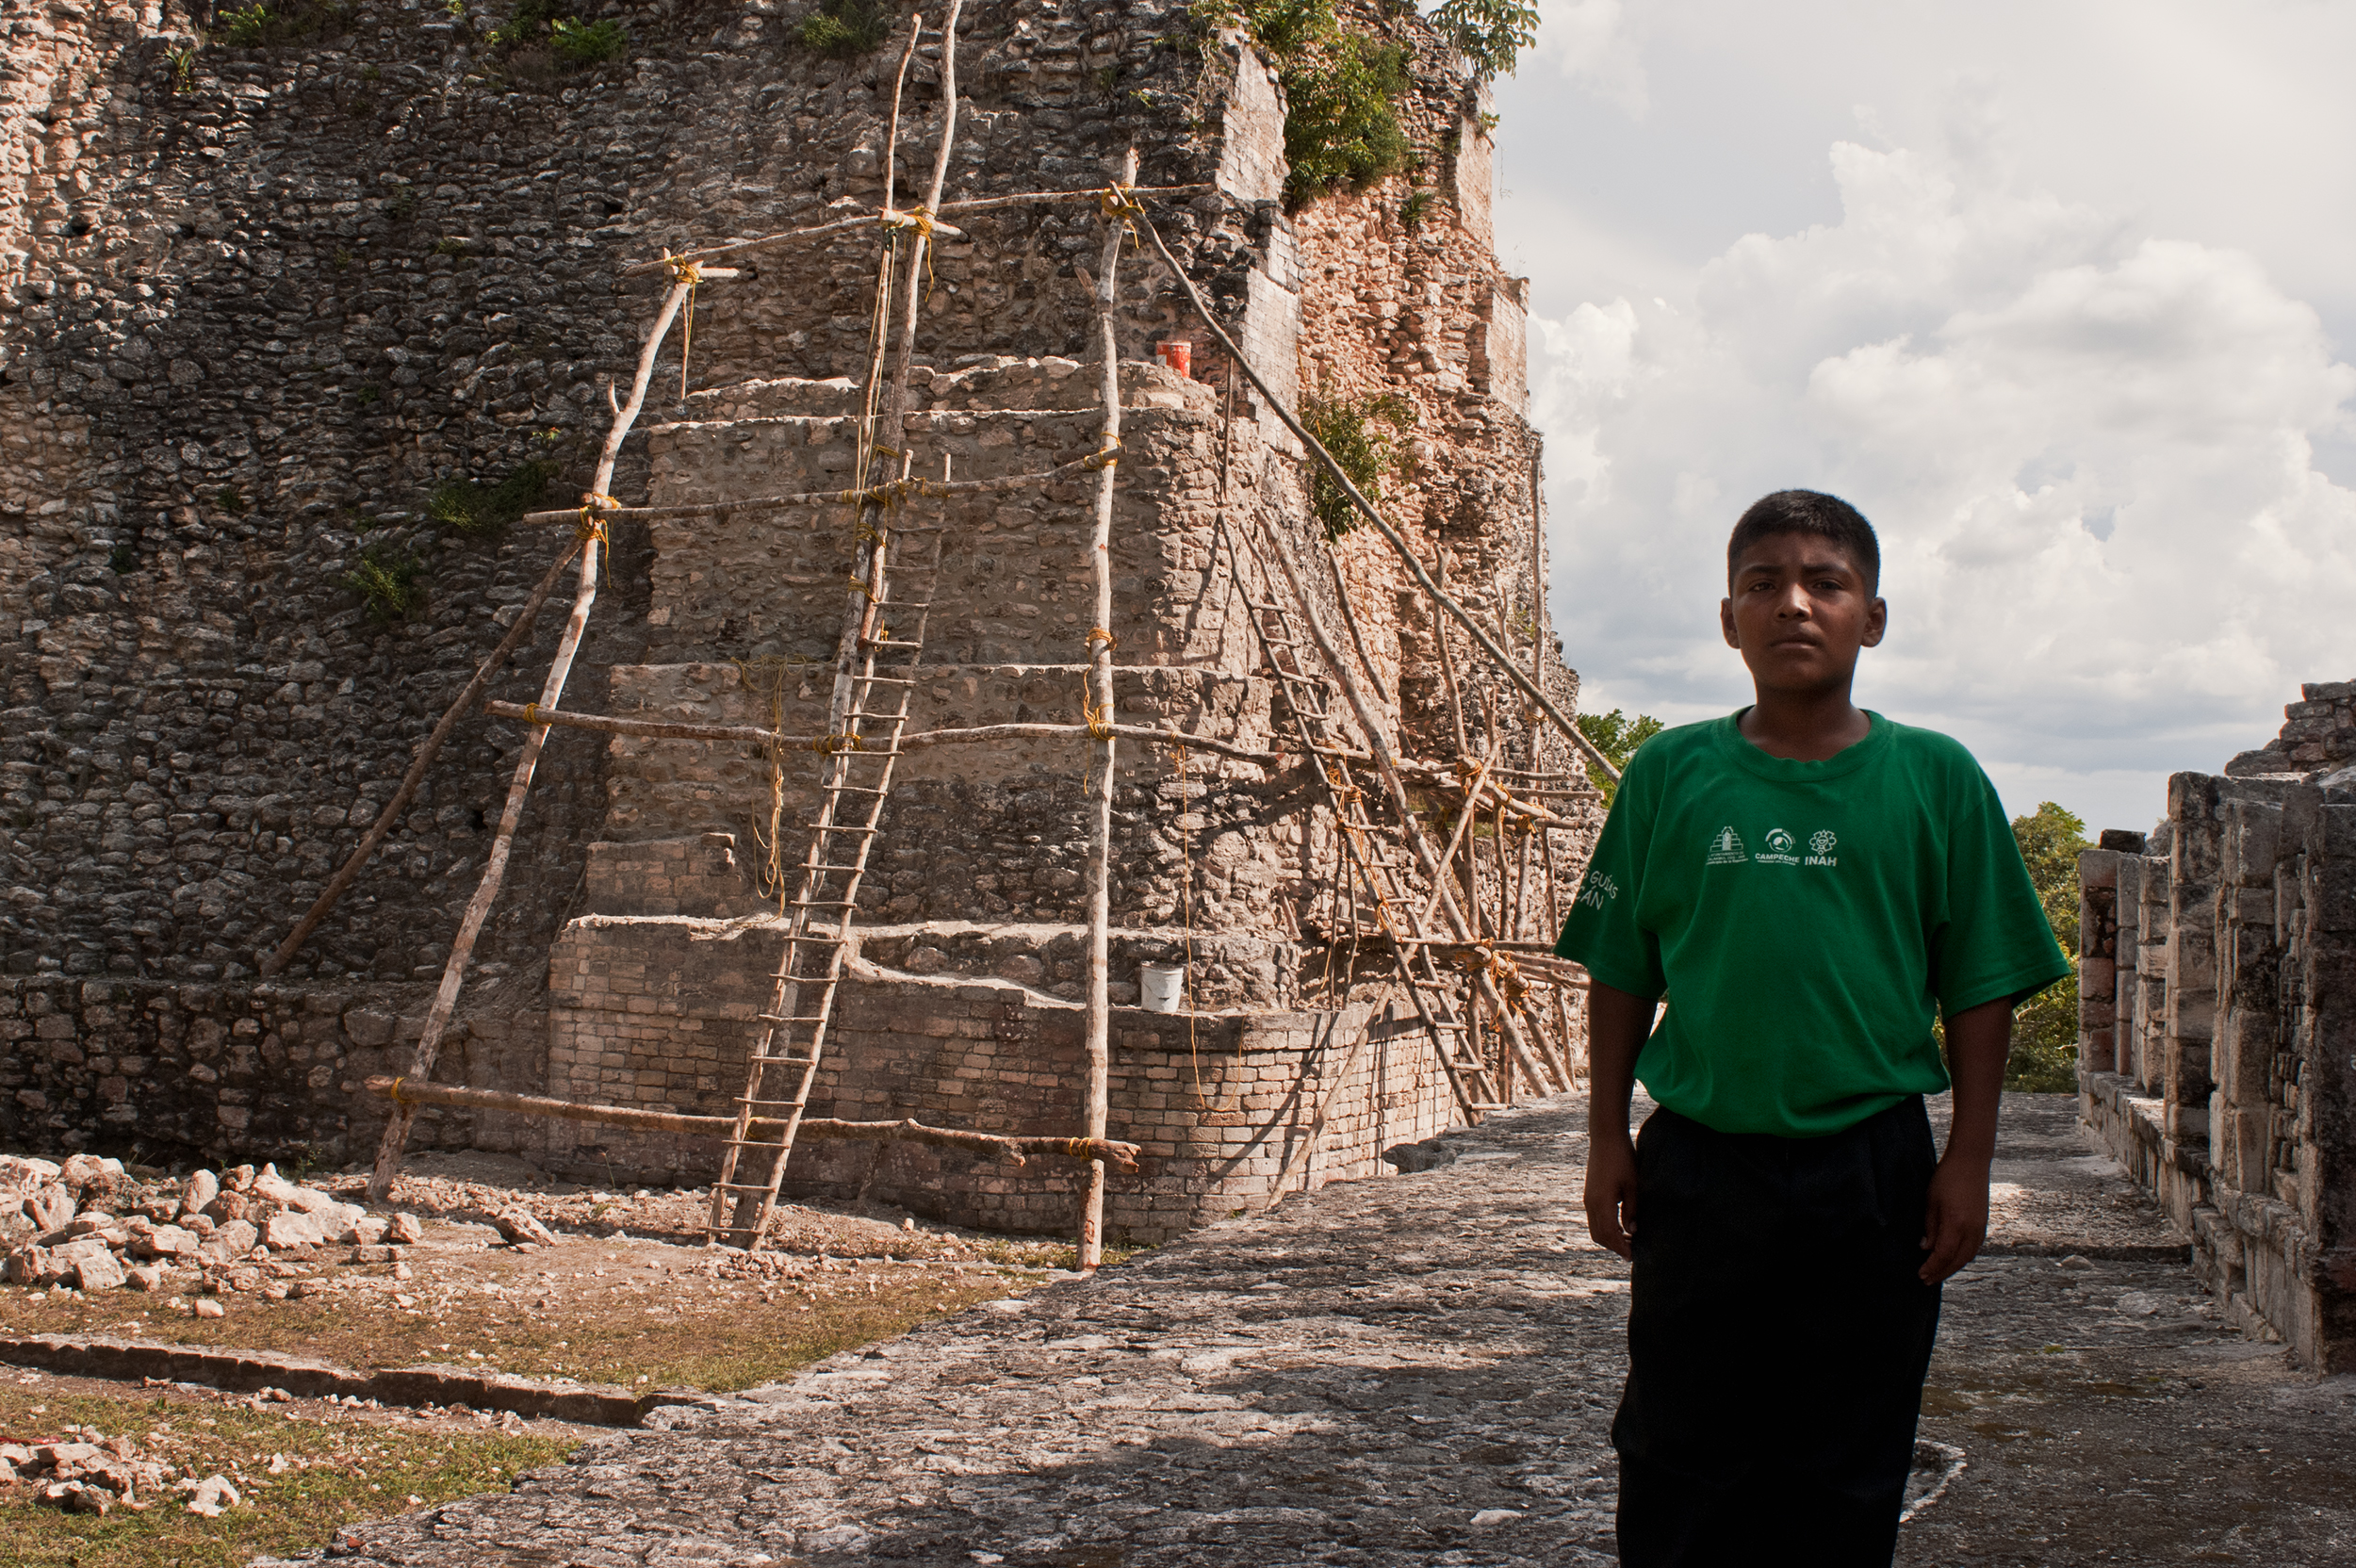 wojtek-jakubiec-photographer-montreal-mayan-mexico-documentary-Kid-by-pyramid-in-palenque.jpg